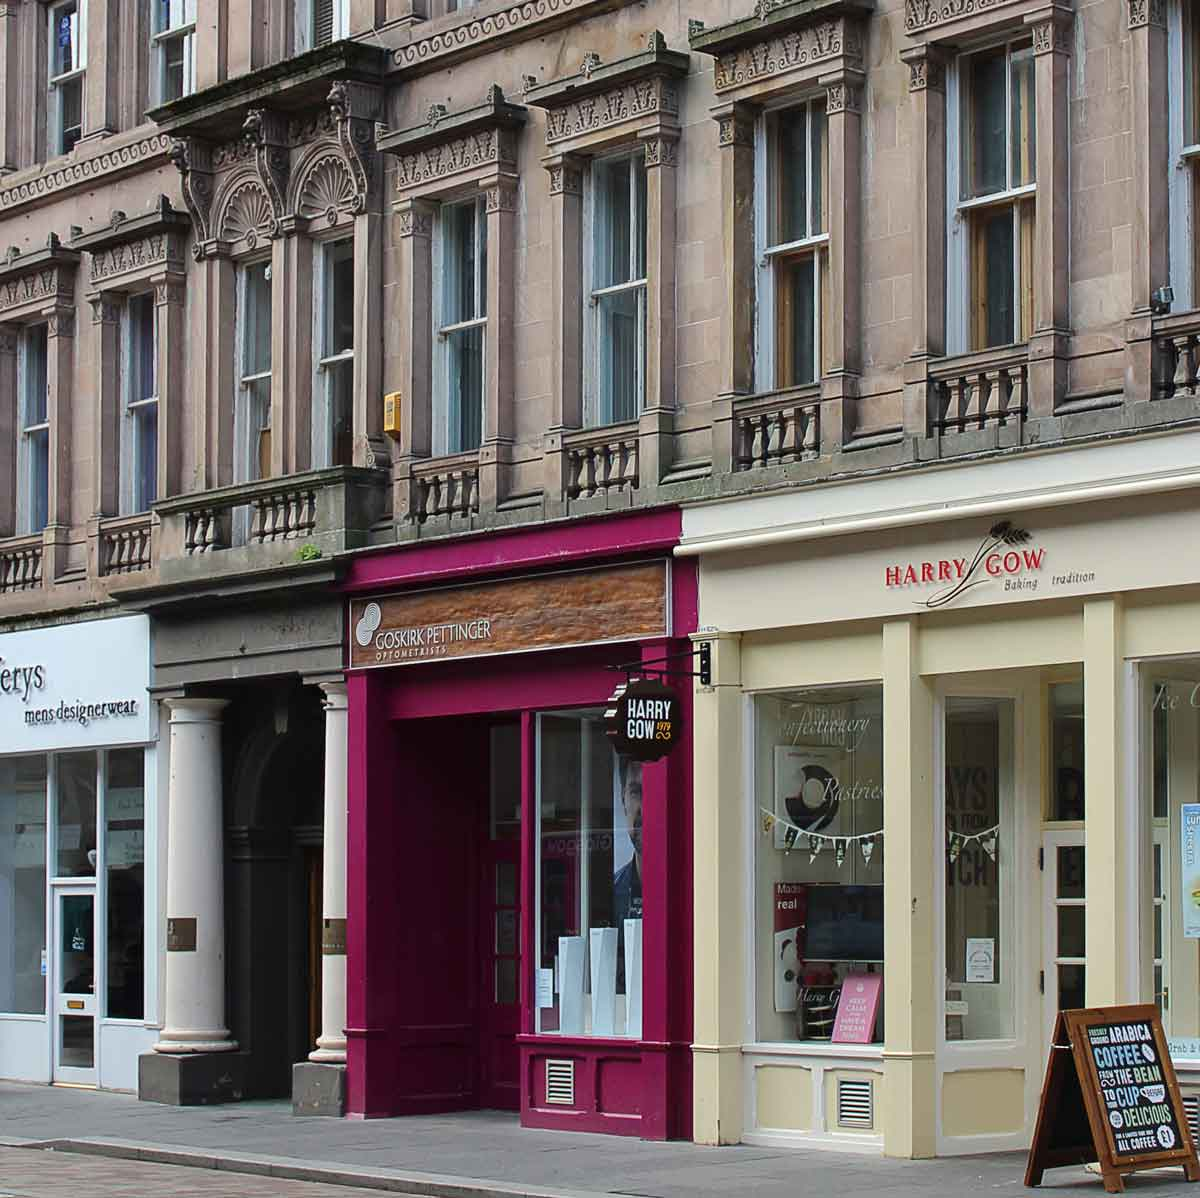 boutique-shops-historic-centre-Union-Street-Inverness-MAAC-Studio-conservation-architects